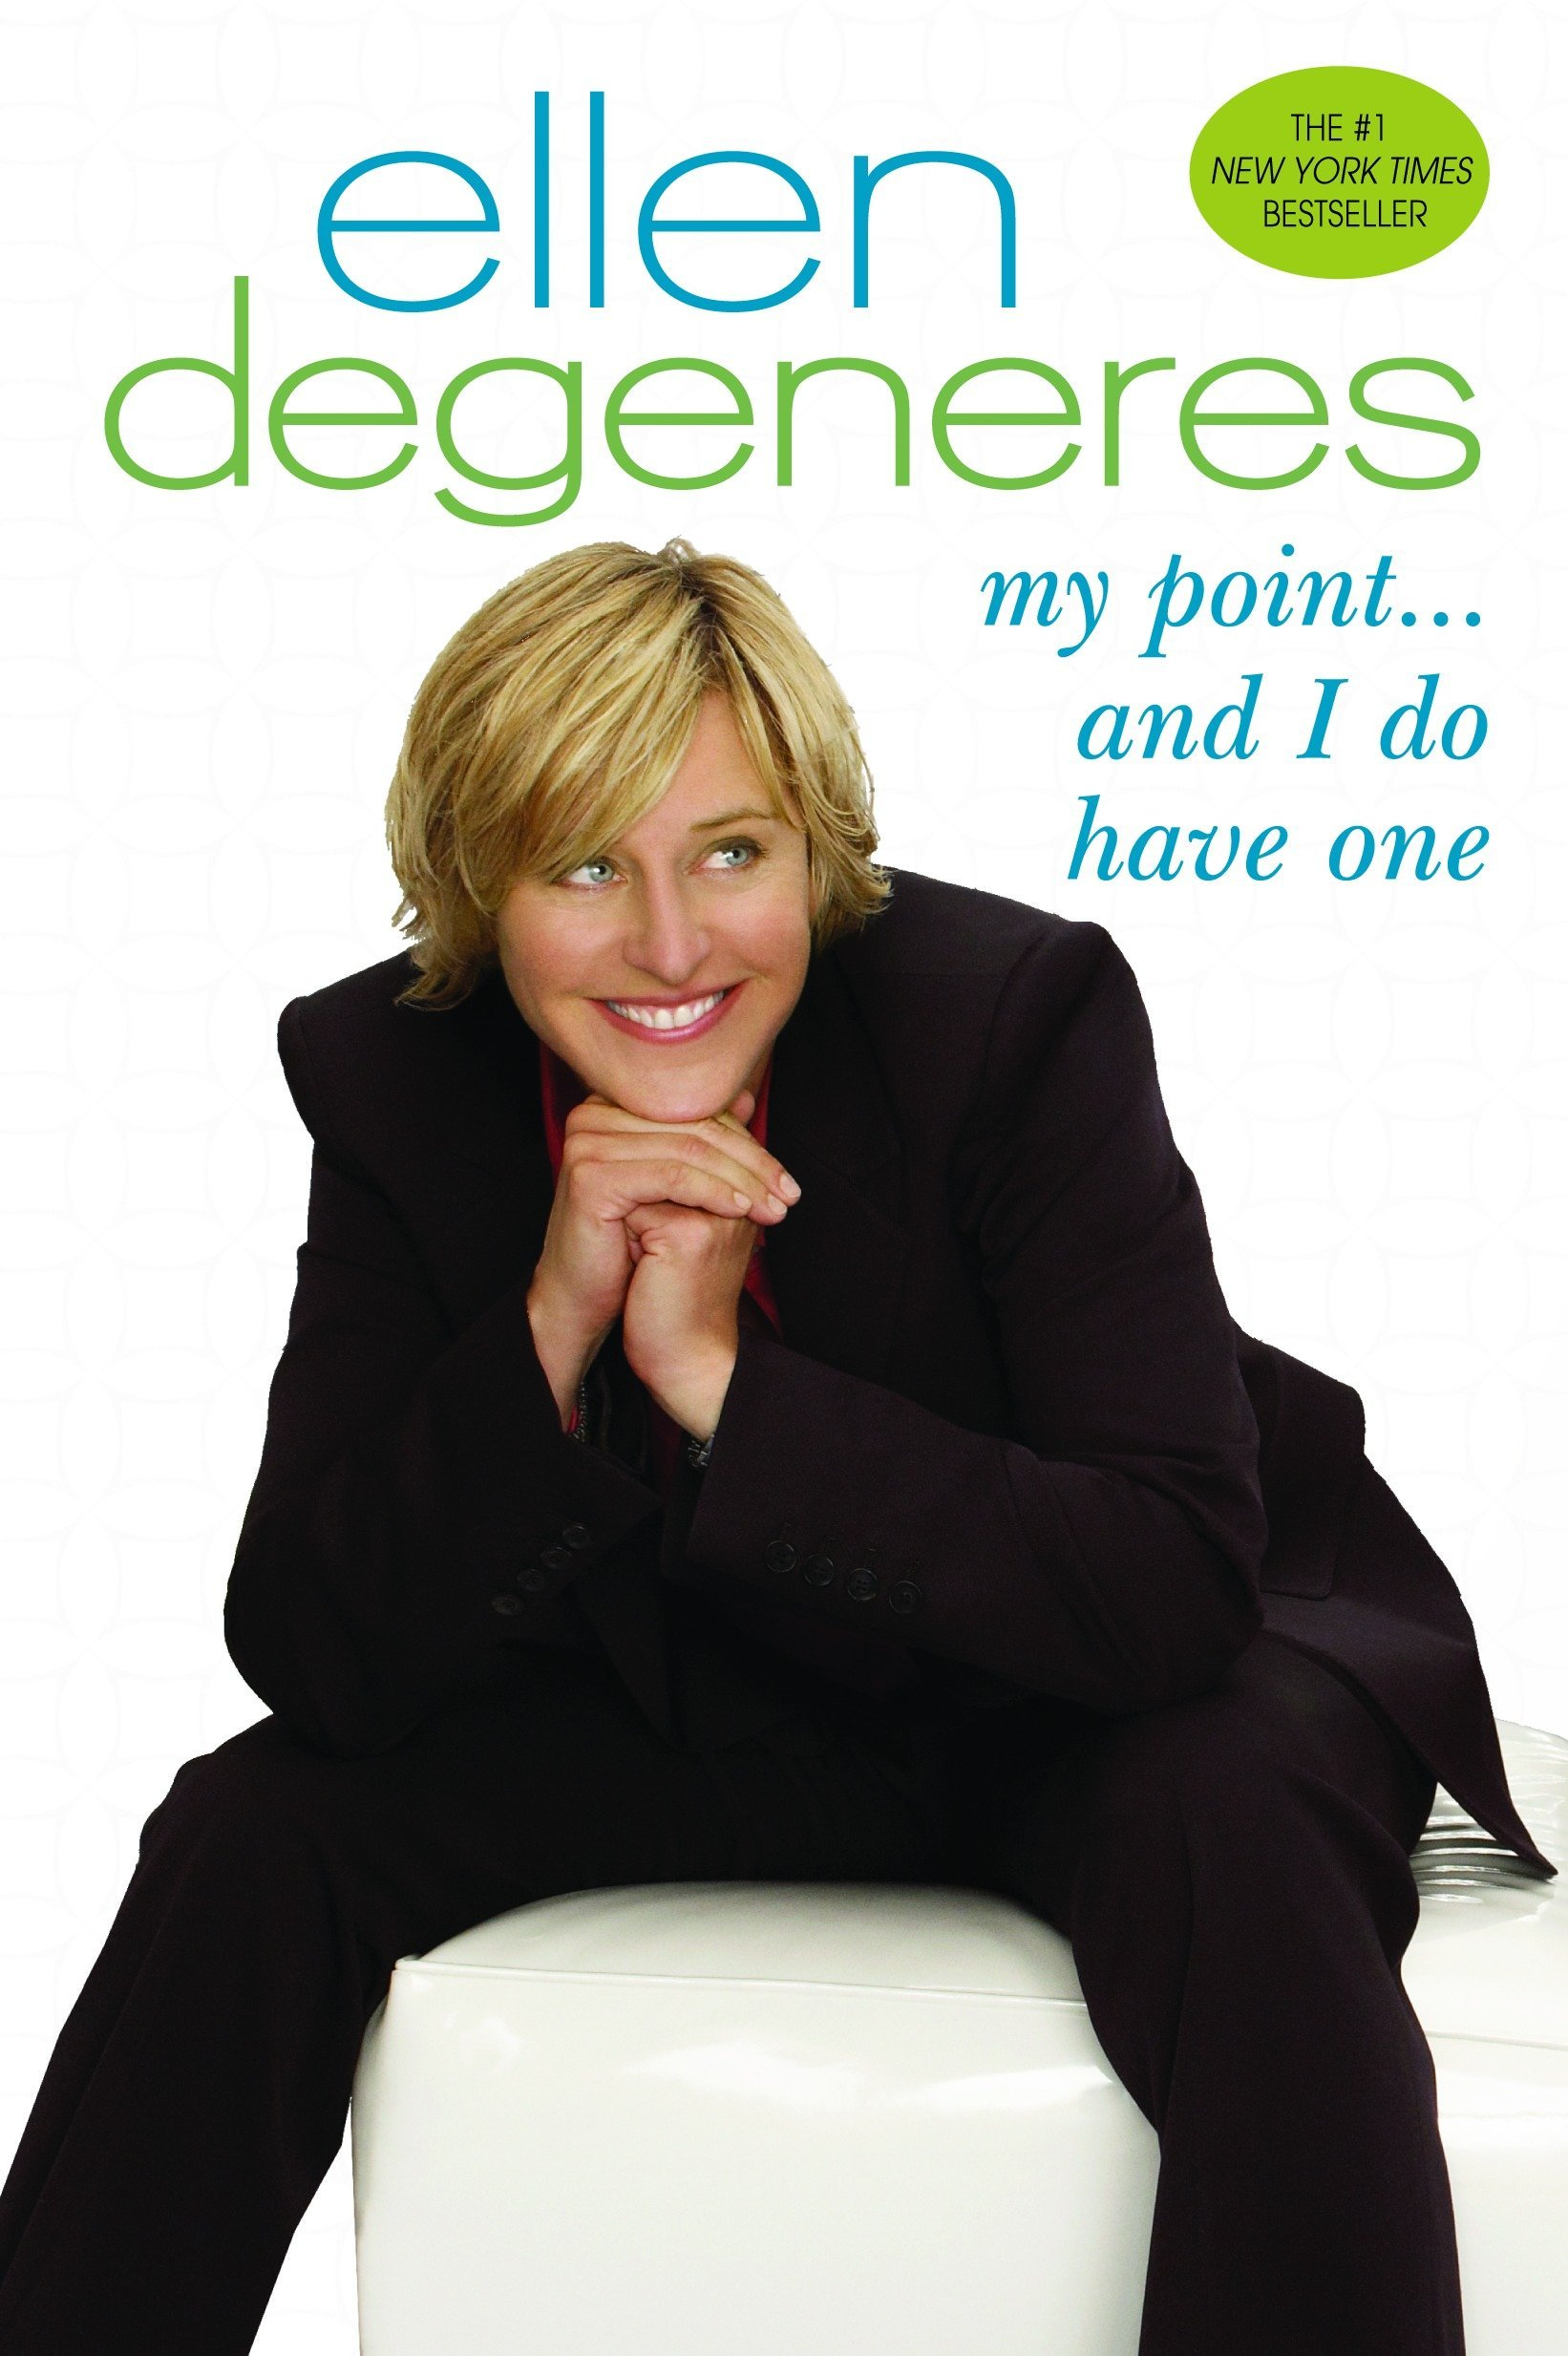 Ellen degeneres best giveaways for golf